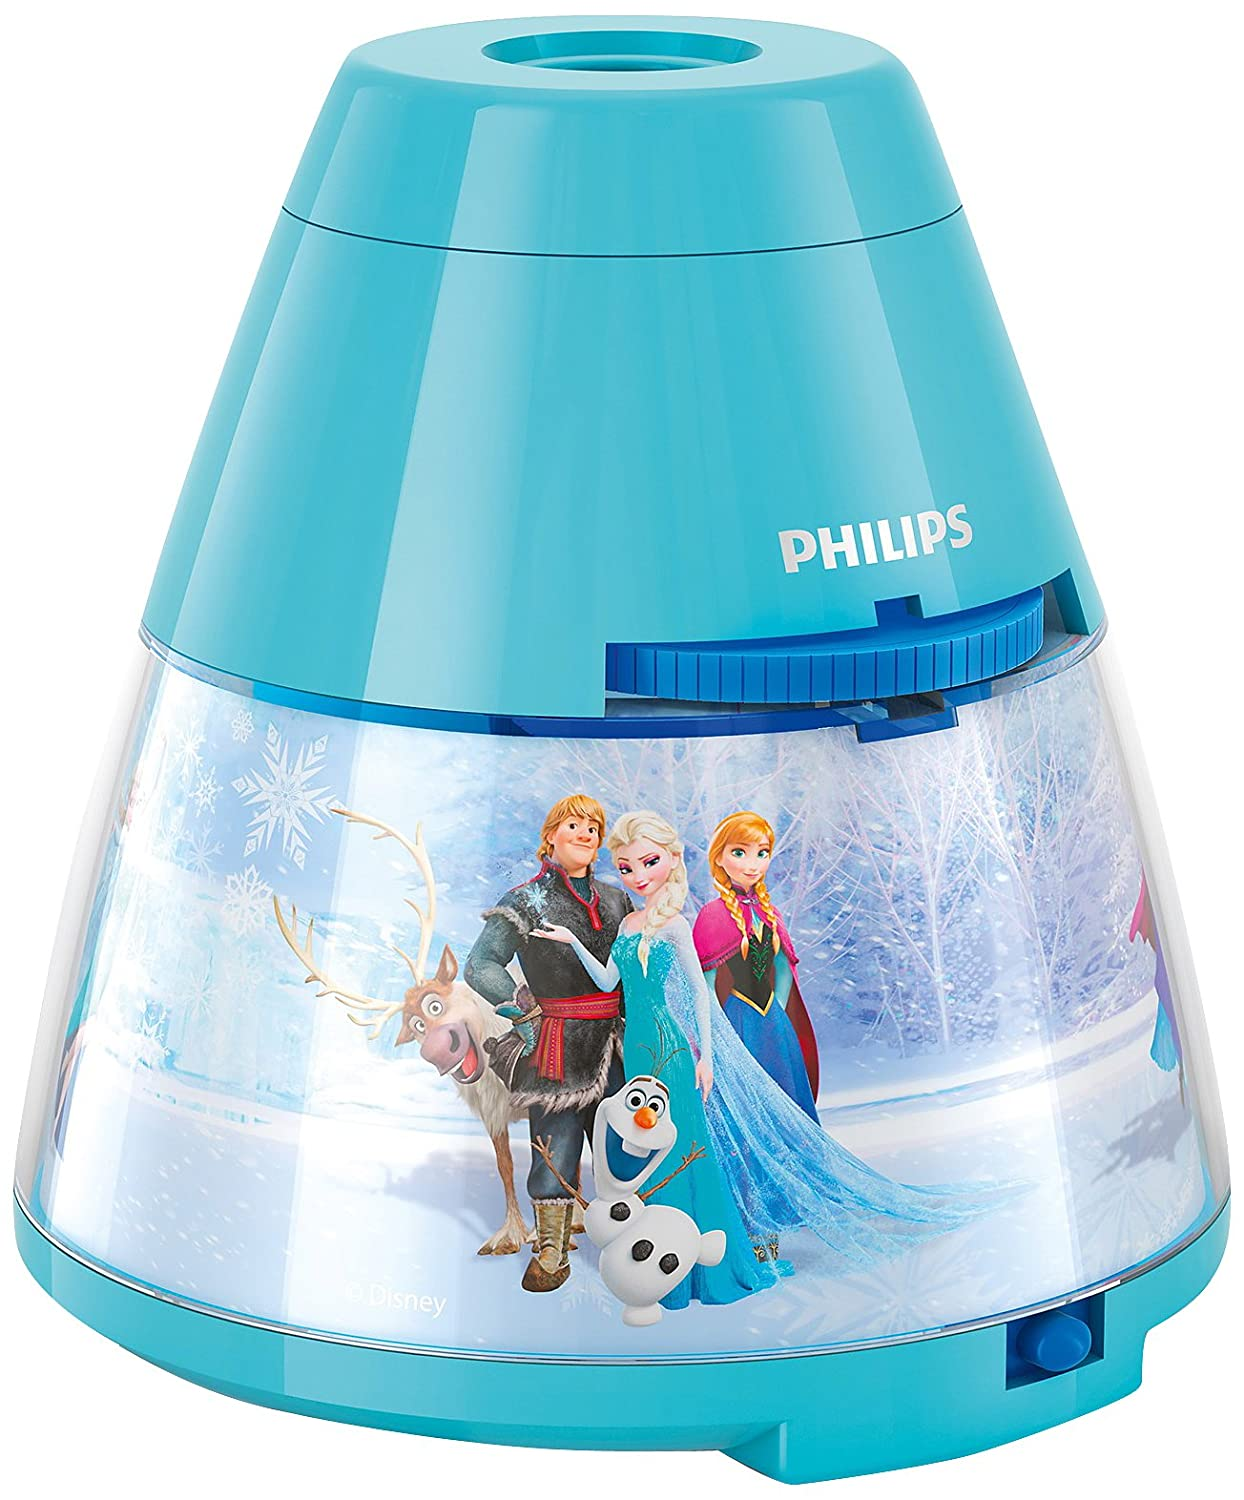 disney frozen bedside table lamp children night light. Black Bedroom Furniture Sets. Home Design Ideas